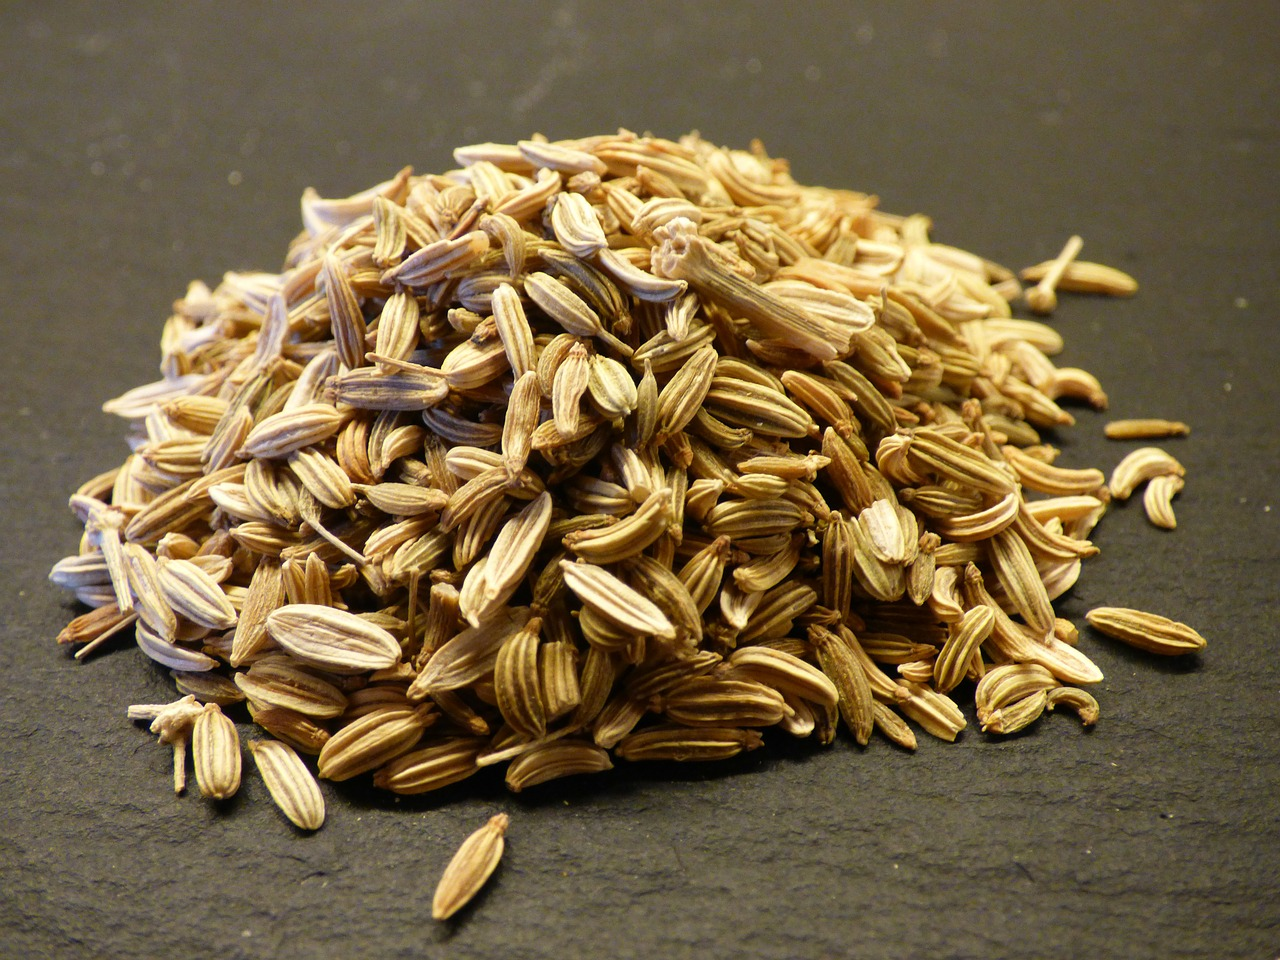 <strong>Fennel</strong> <hr> Bulb, stalk, leaves, seeds can all be used in cooking. Seeds best when dry roasted in coconut oil or ghee before cooking.